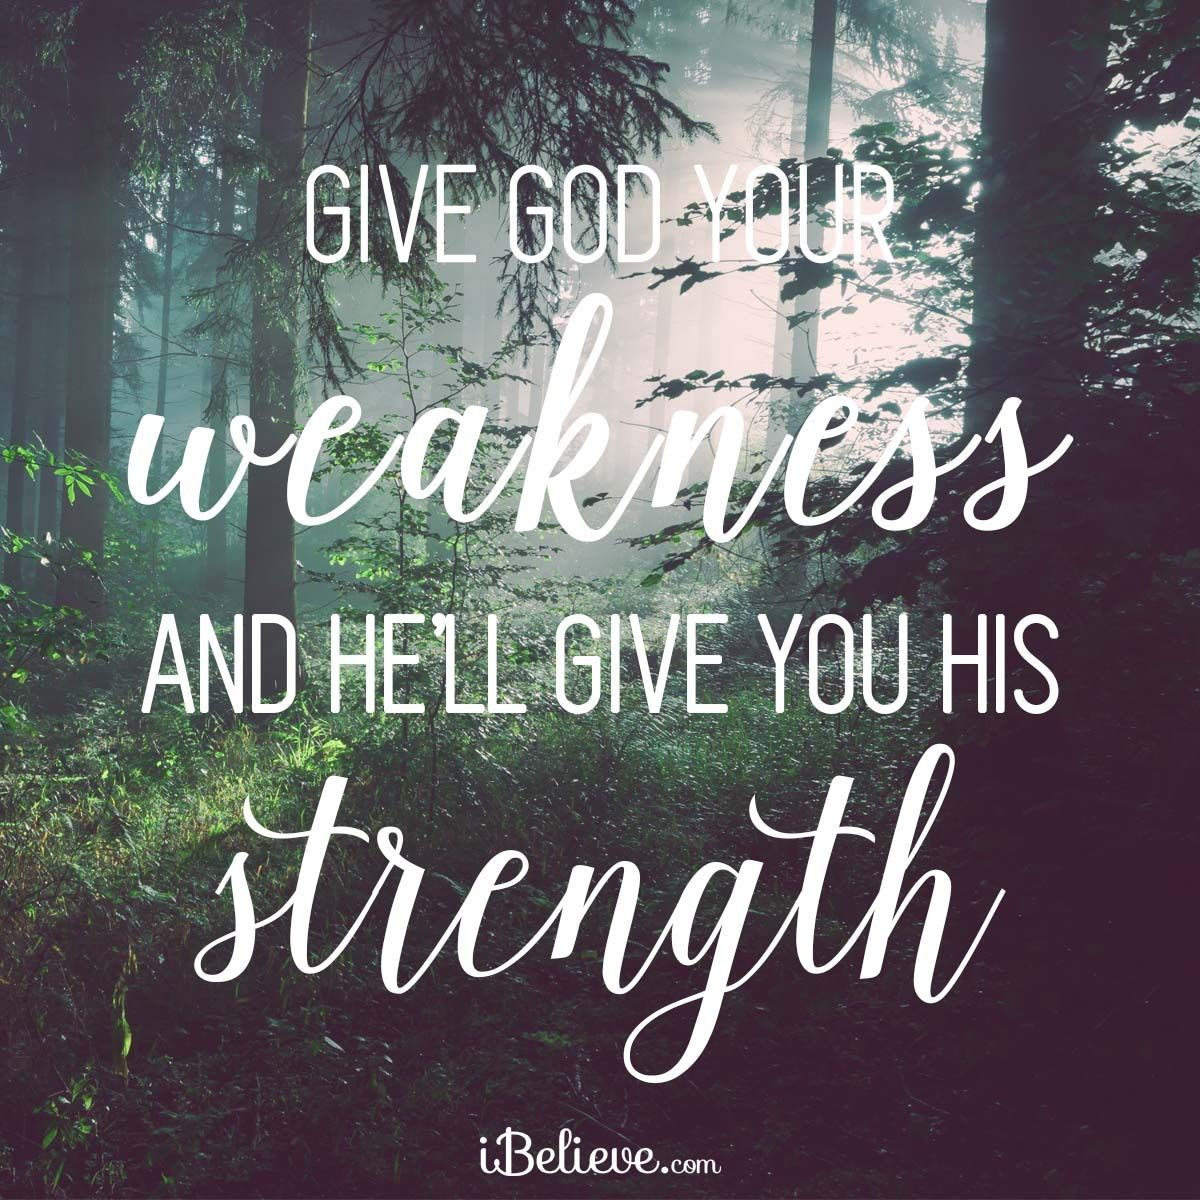 give god your weakness and he ll give you his strength ibelieve give god your weakness and he ll give you his strength ibelieve com